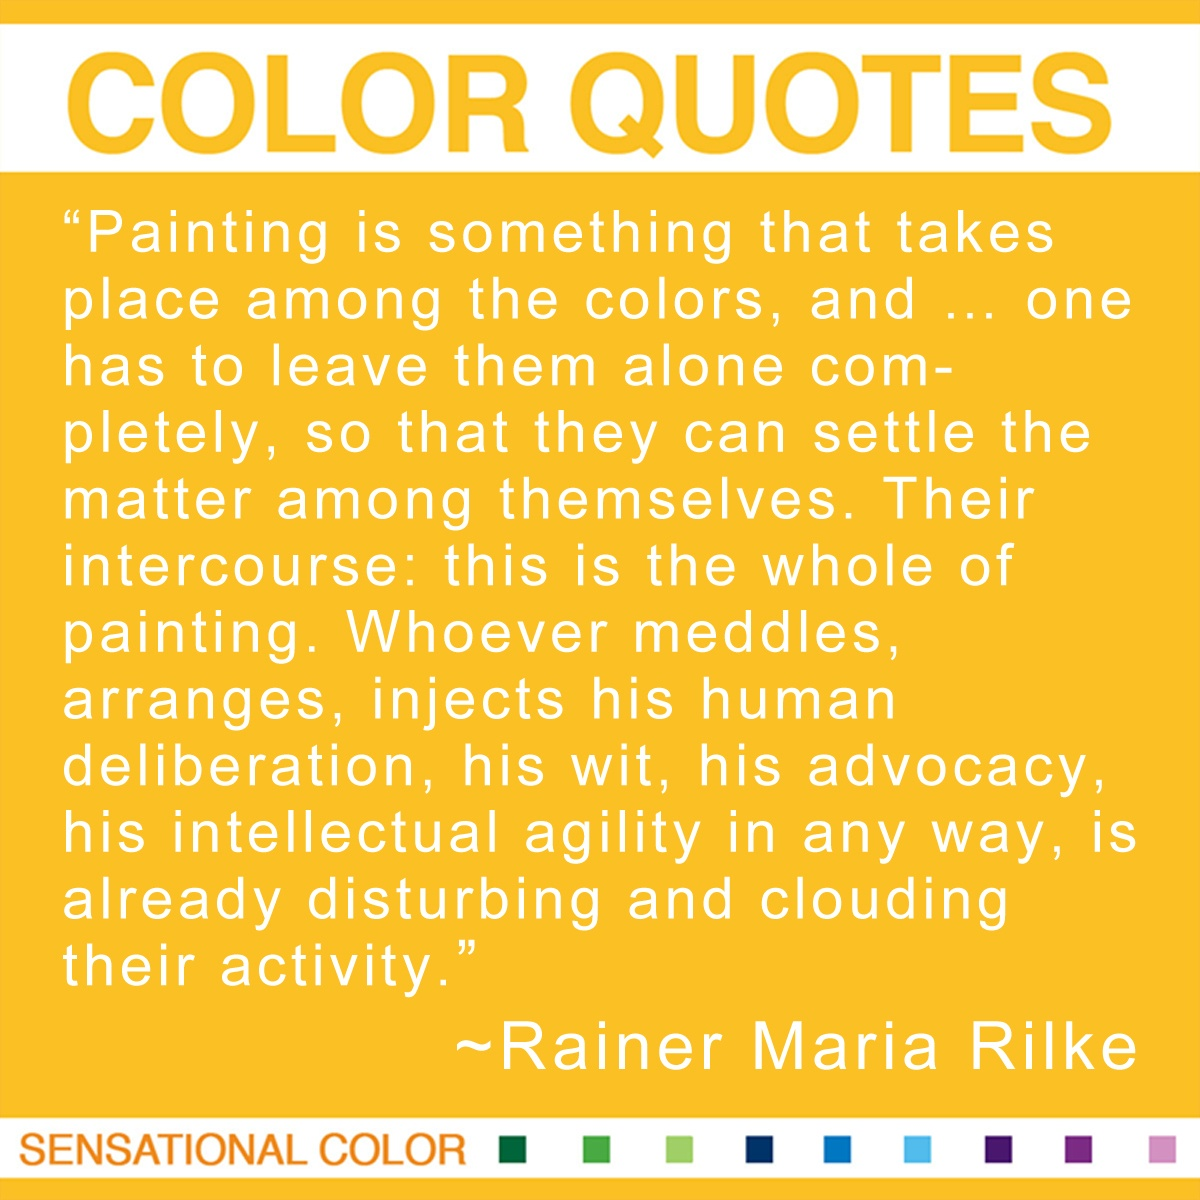 """Painting is something that takes place among the colors, and … one has to leave them alone completely, so that they can settle the matter among themselves. Their intercourse: this is the whole of painting. Whoever meddles, arranges, injects his human deliberation, his wit, his advocacy, his intellectual agility in any way, is already disturbing and clouding their activity."" - Rainer Maria Rilke"